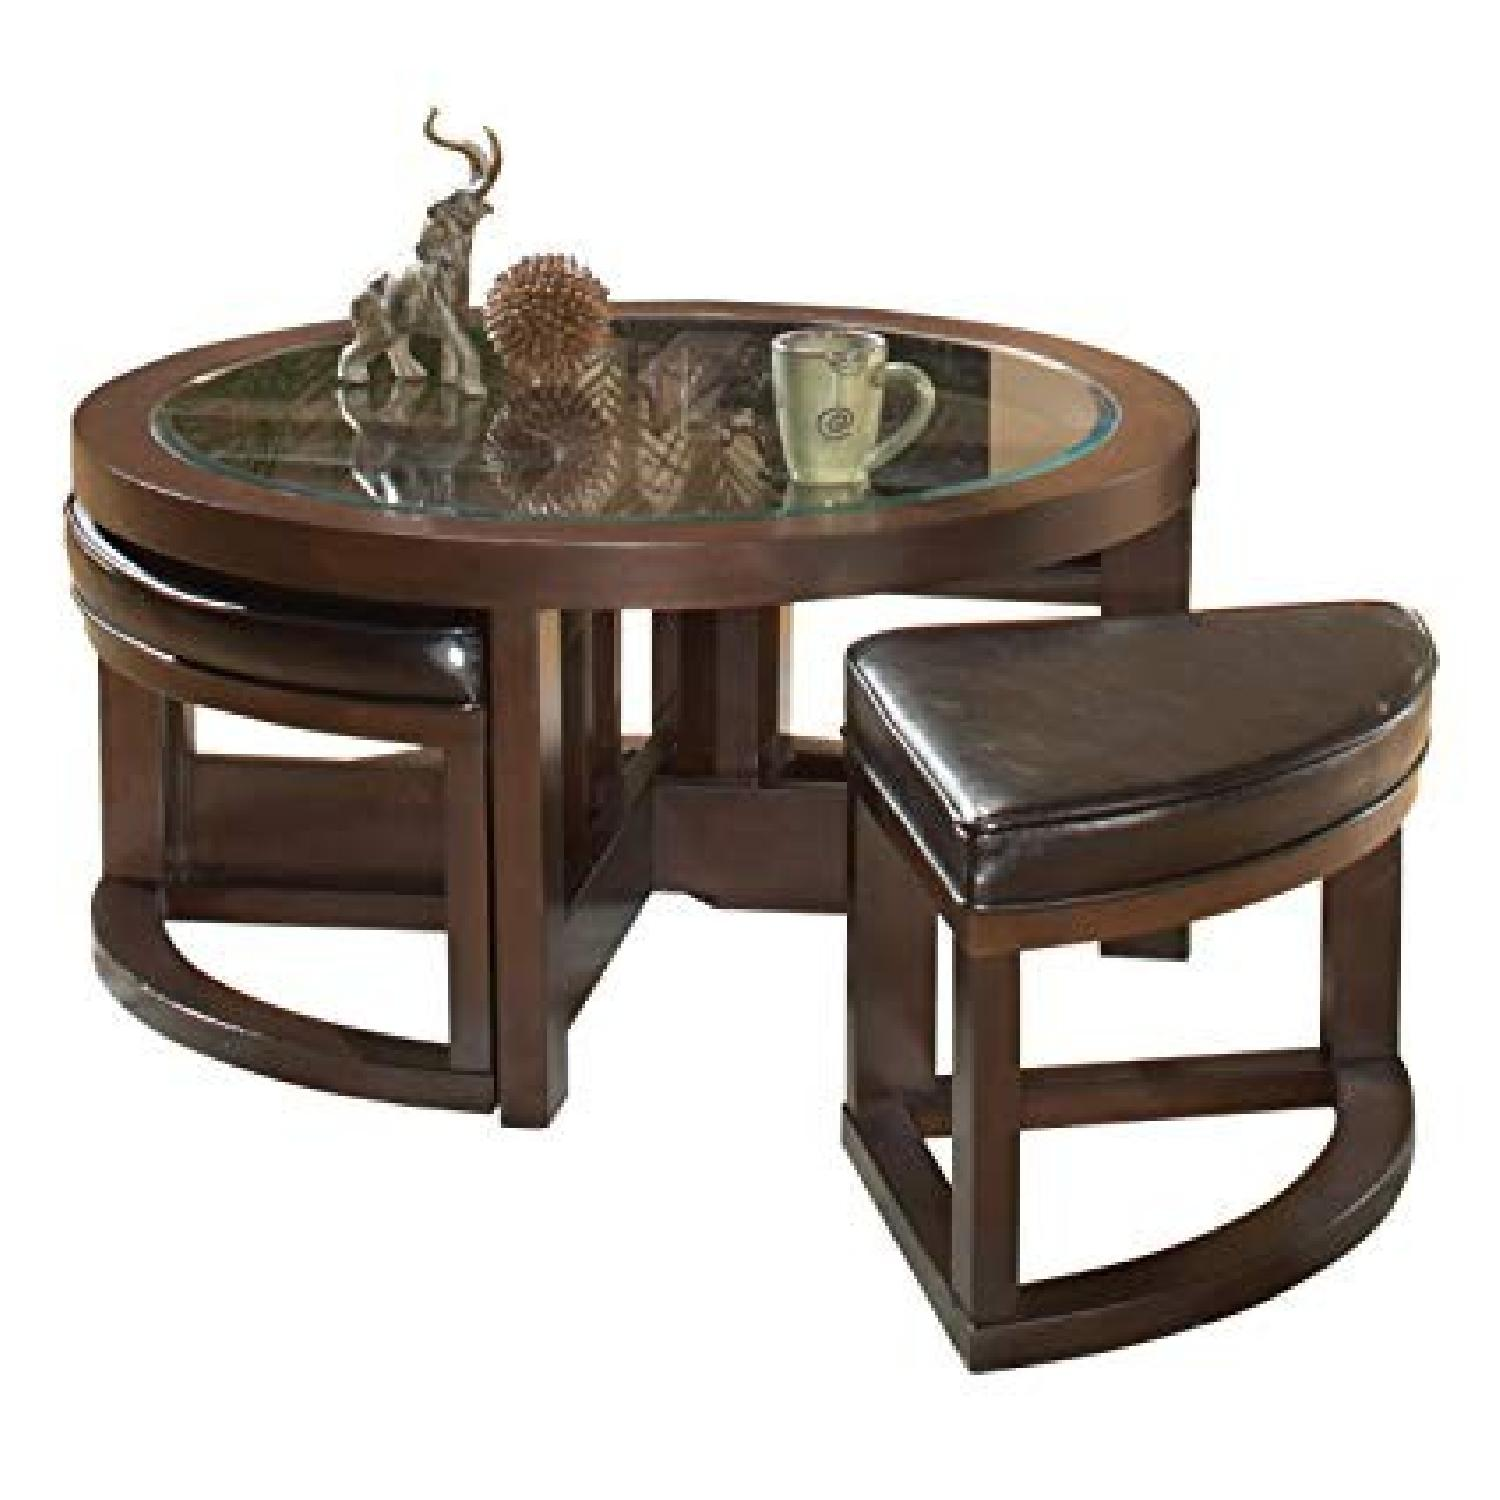 Round Glass Top Coffee Table w/ 4 Ottomans - image-0